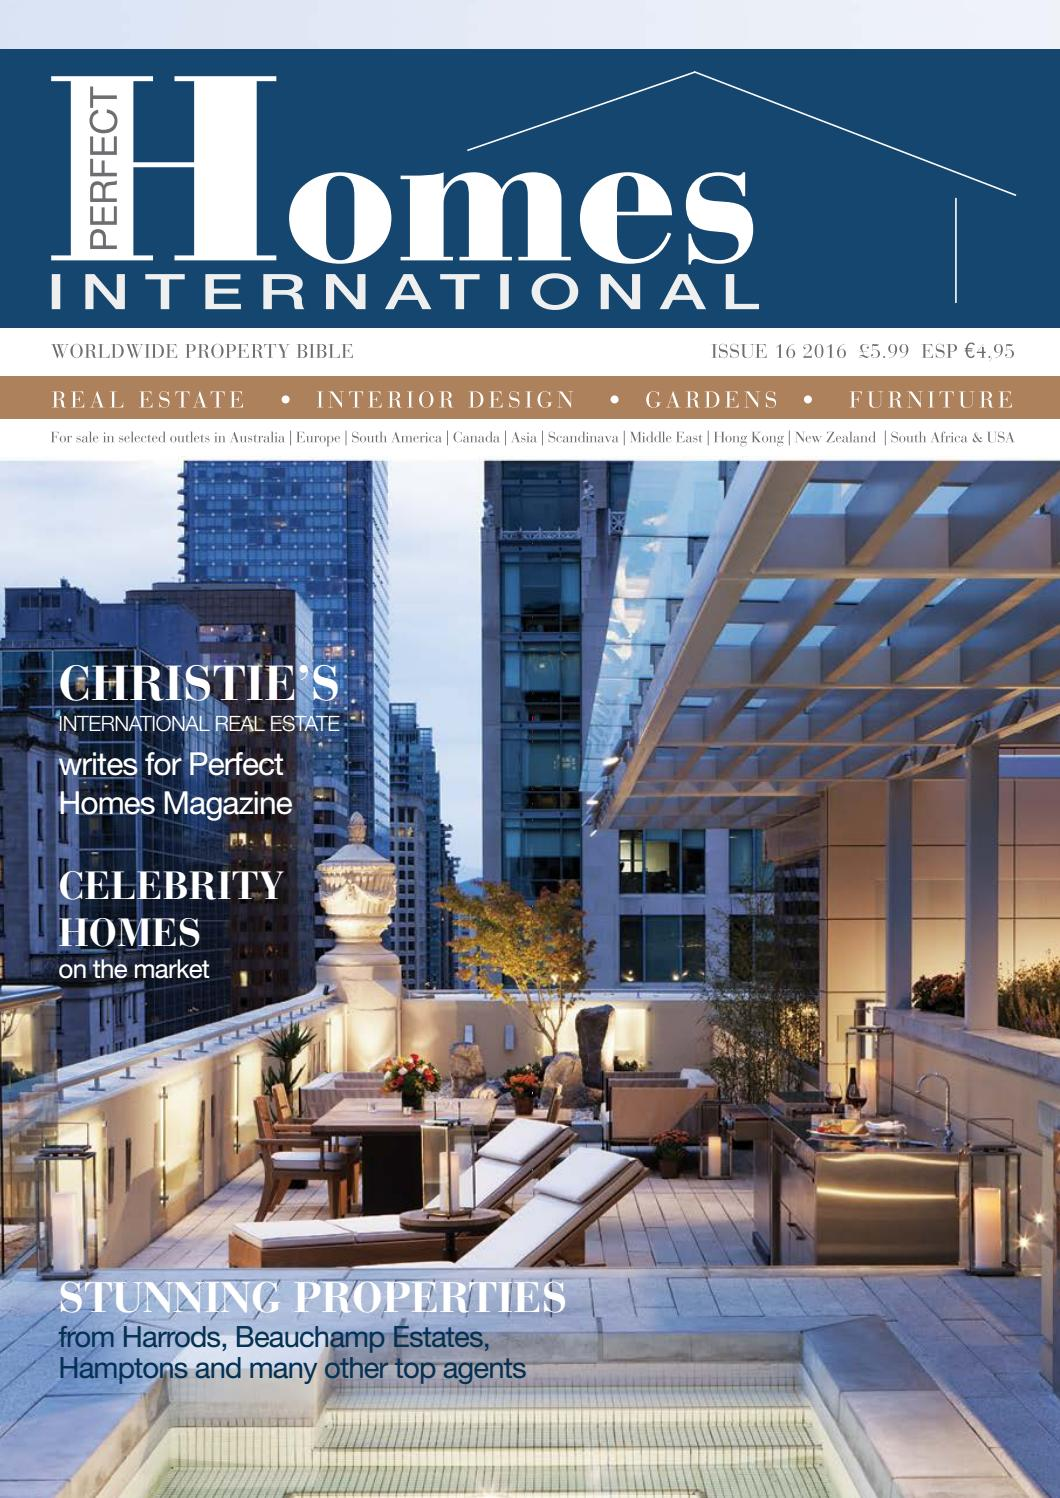 PERFECT HOMES MAGAZINE By ClearVision Marketing